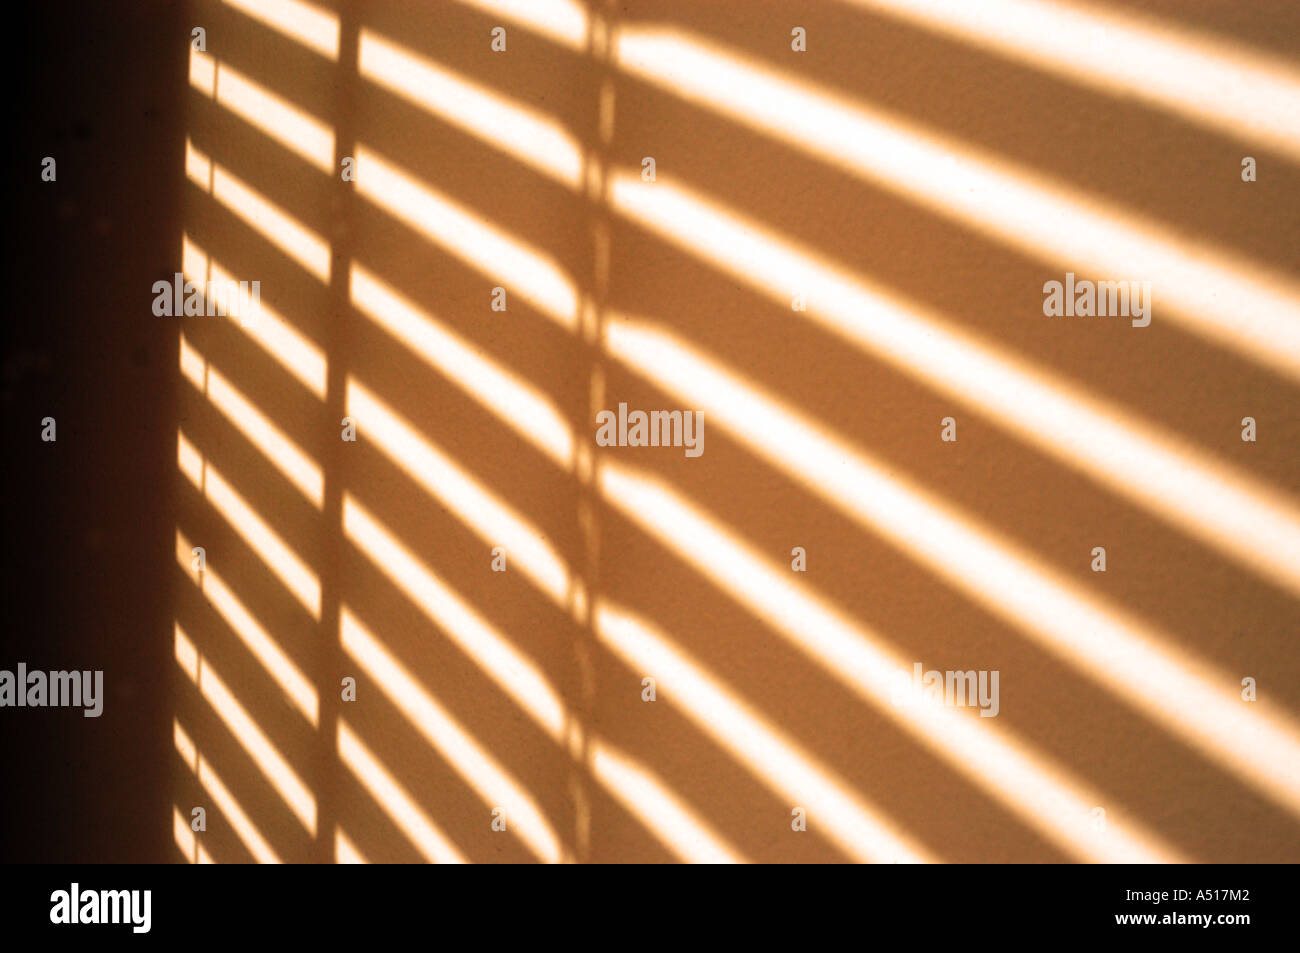 Shadow On Sun Blind High Resolution Stock Photography And Images Alamy